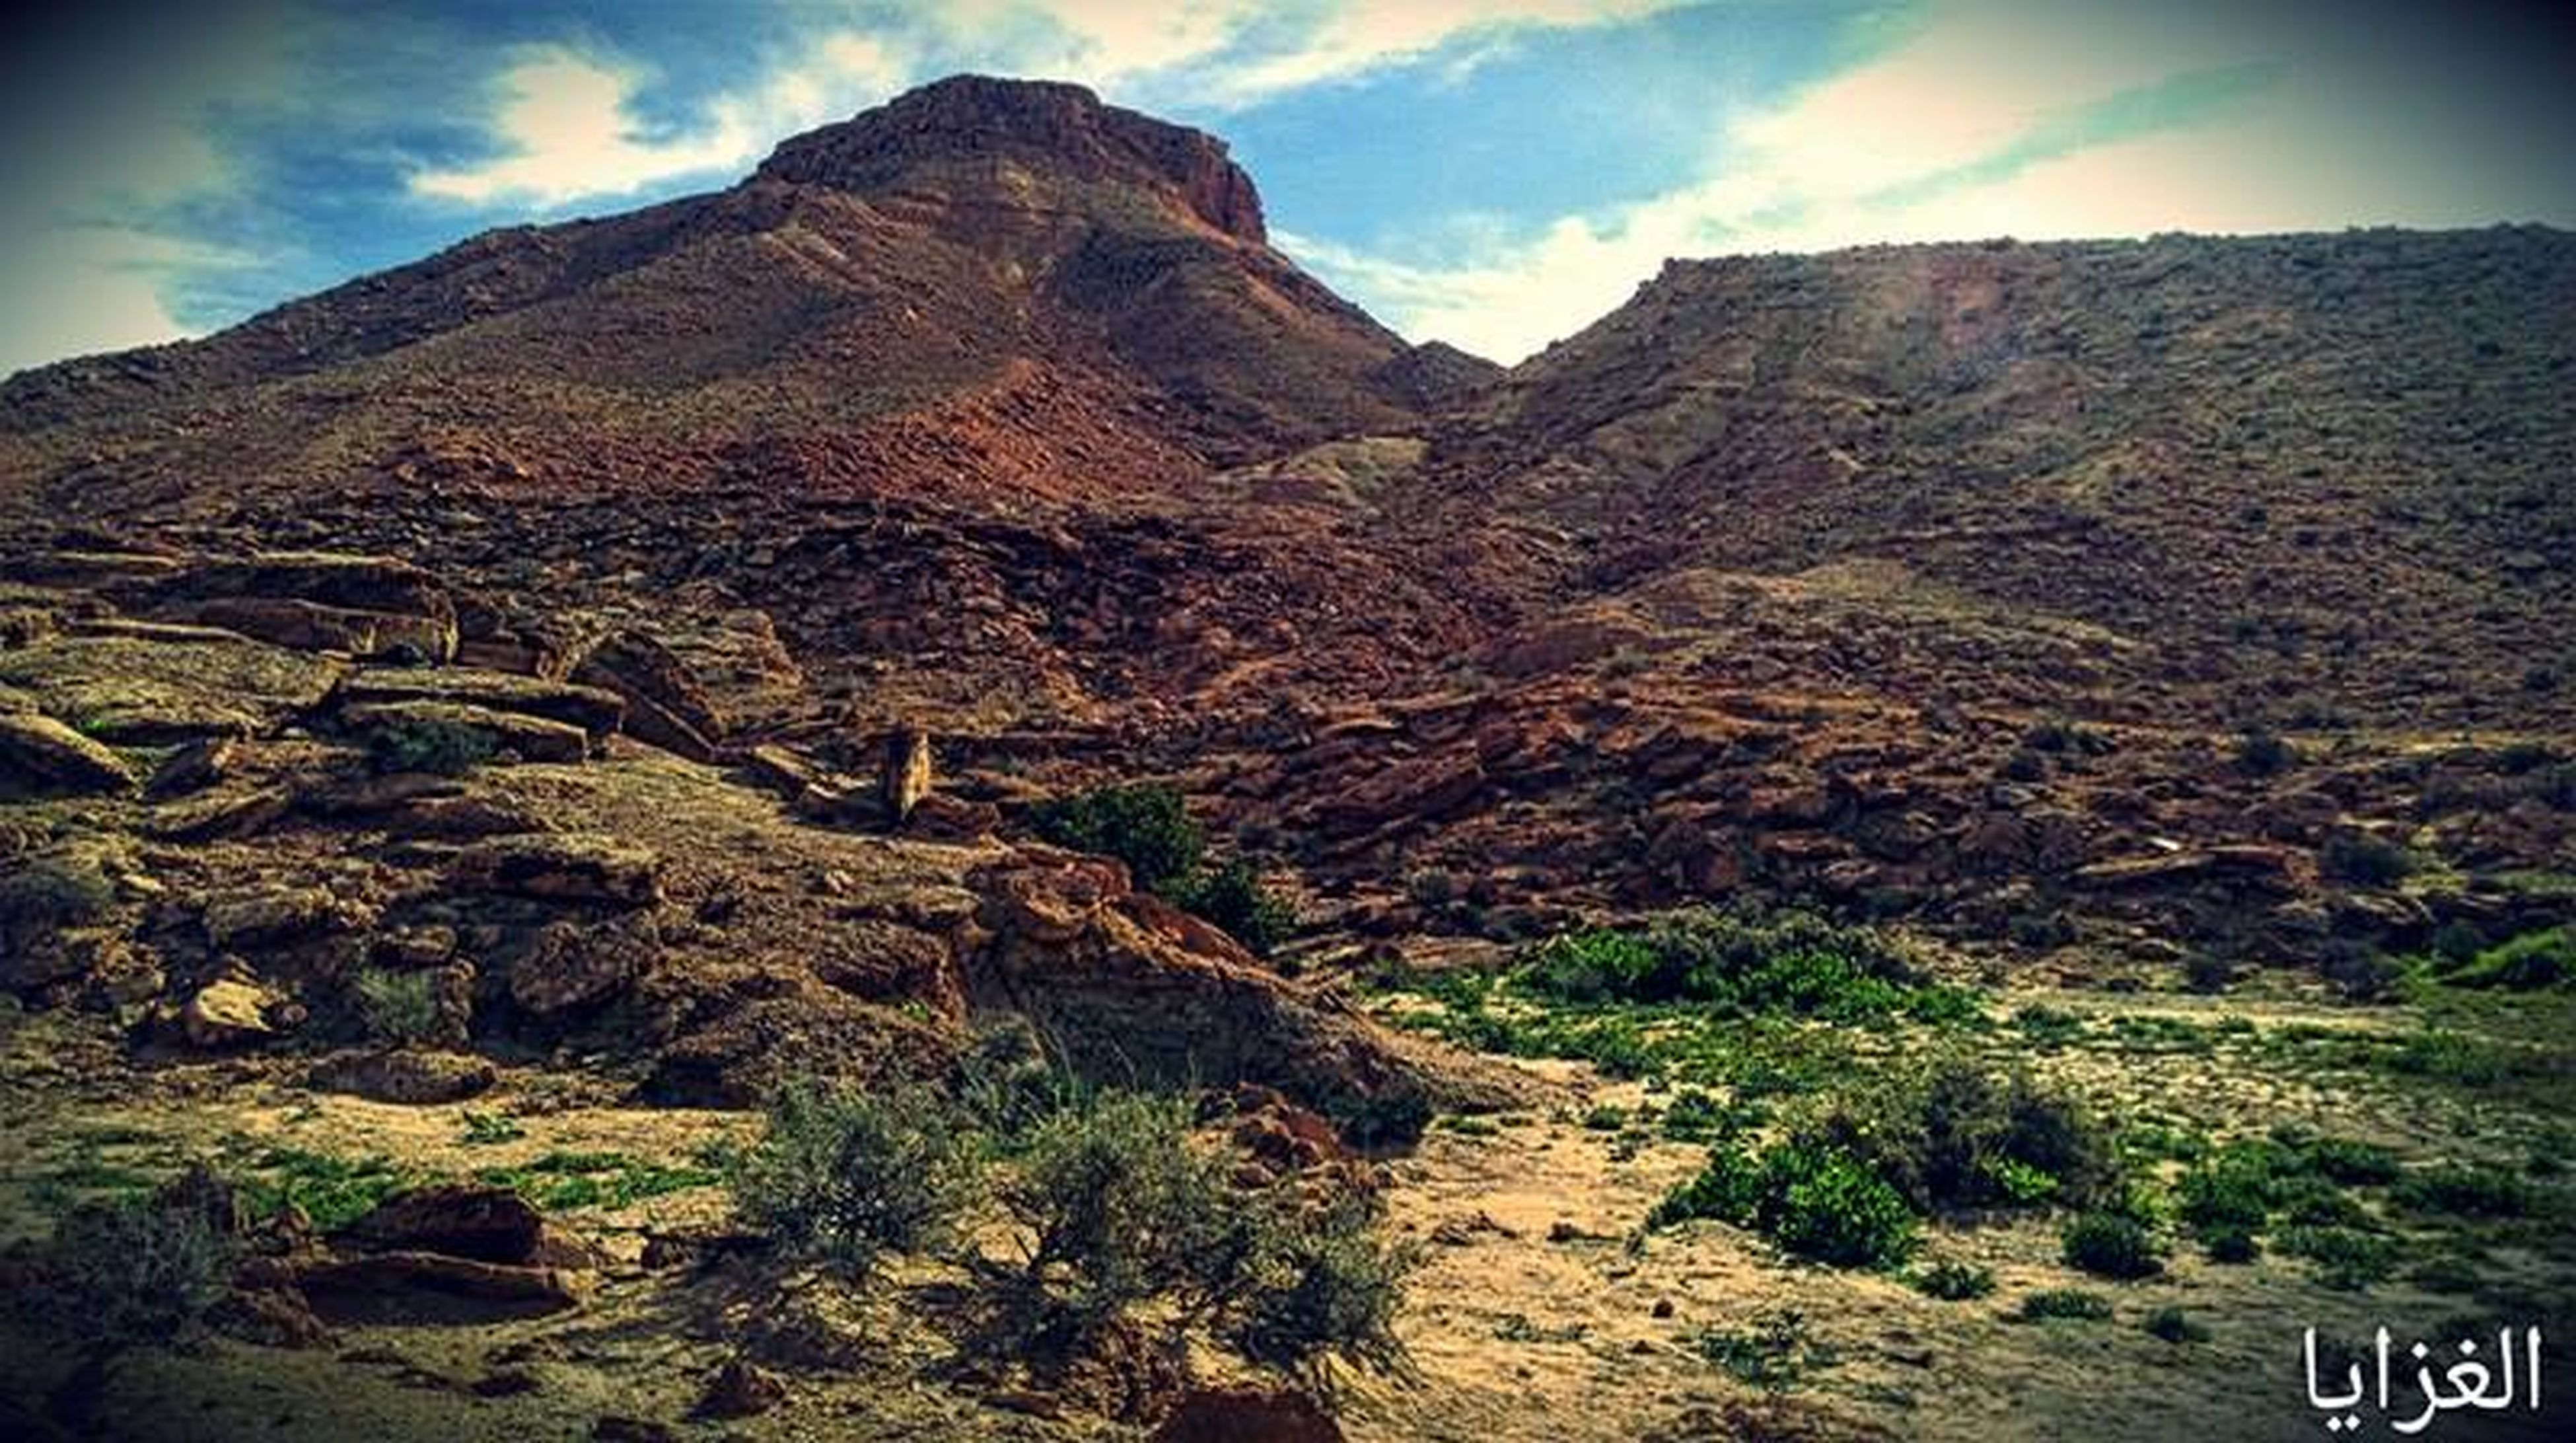 geology, nature, tranquility, landscape, tranquil scene, sky, outdoors, scenics, mountain, no people, beauty in nature, day